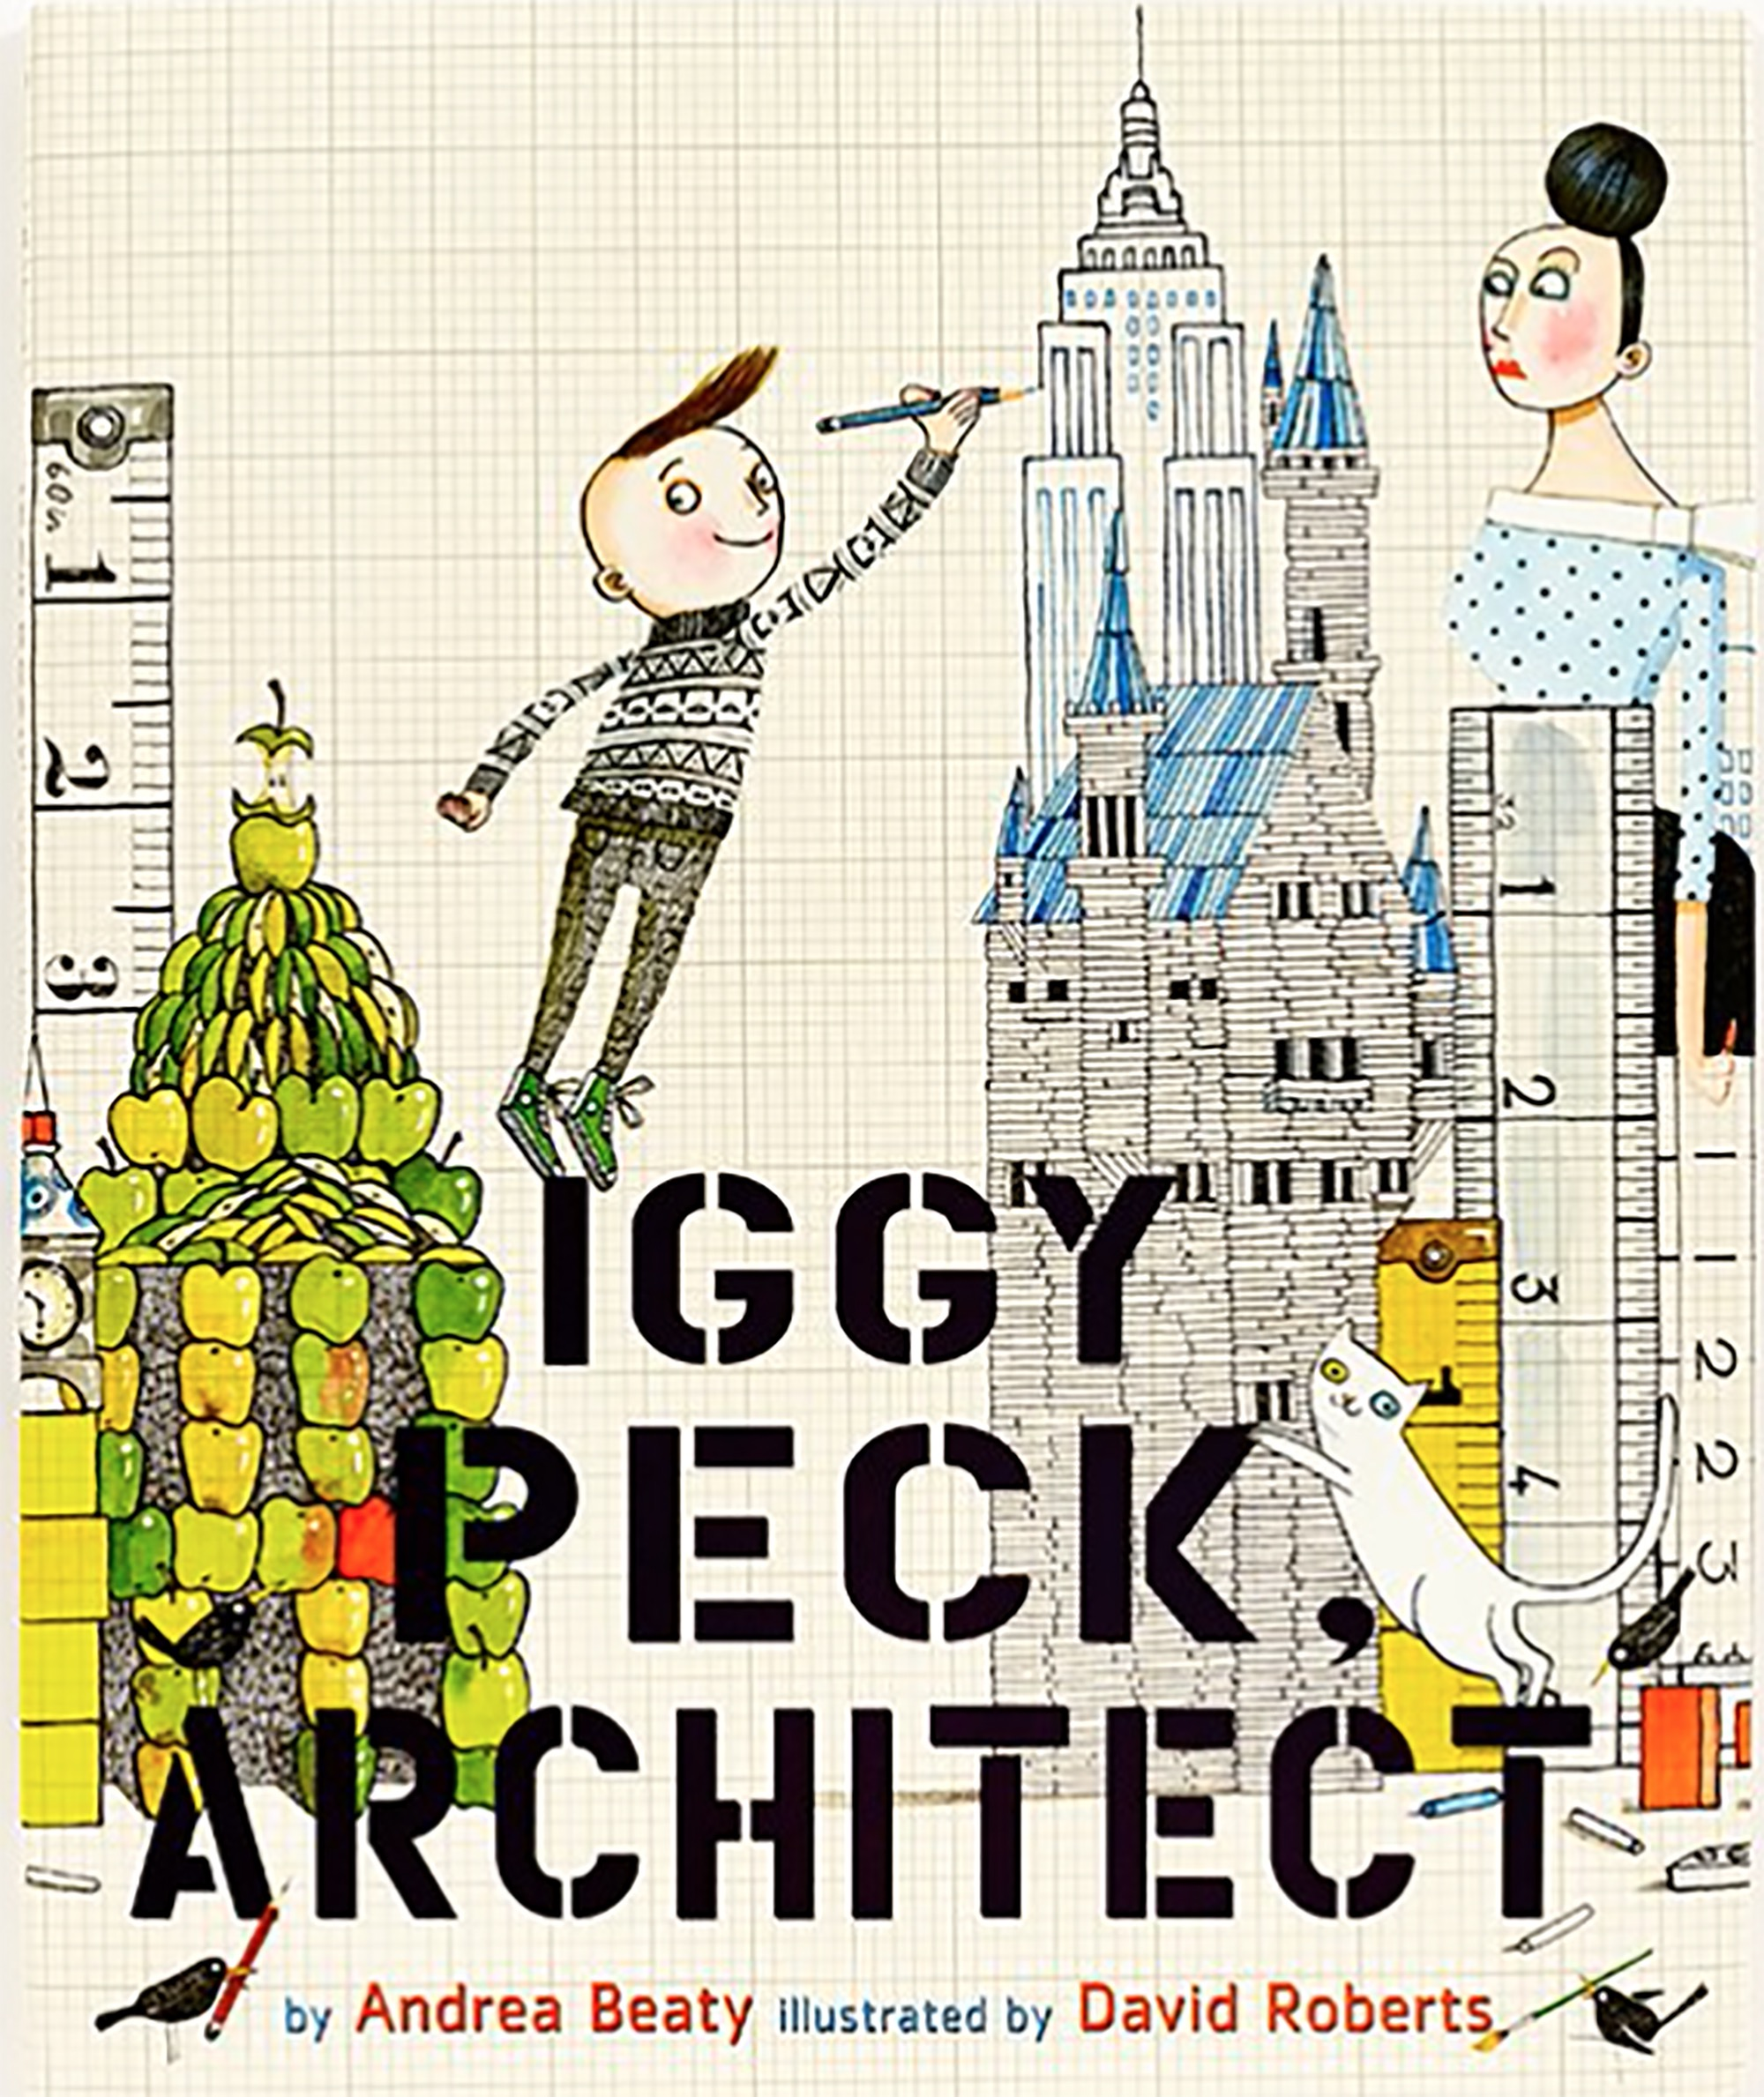 Iggy_Peck_Architect.jpg - 919.03 KB